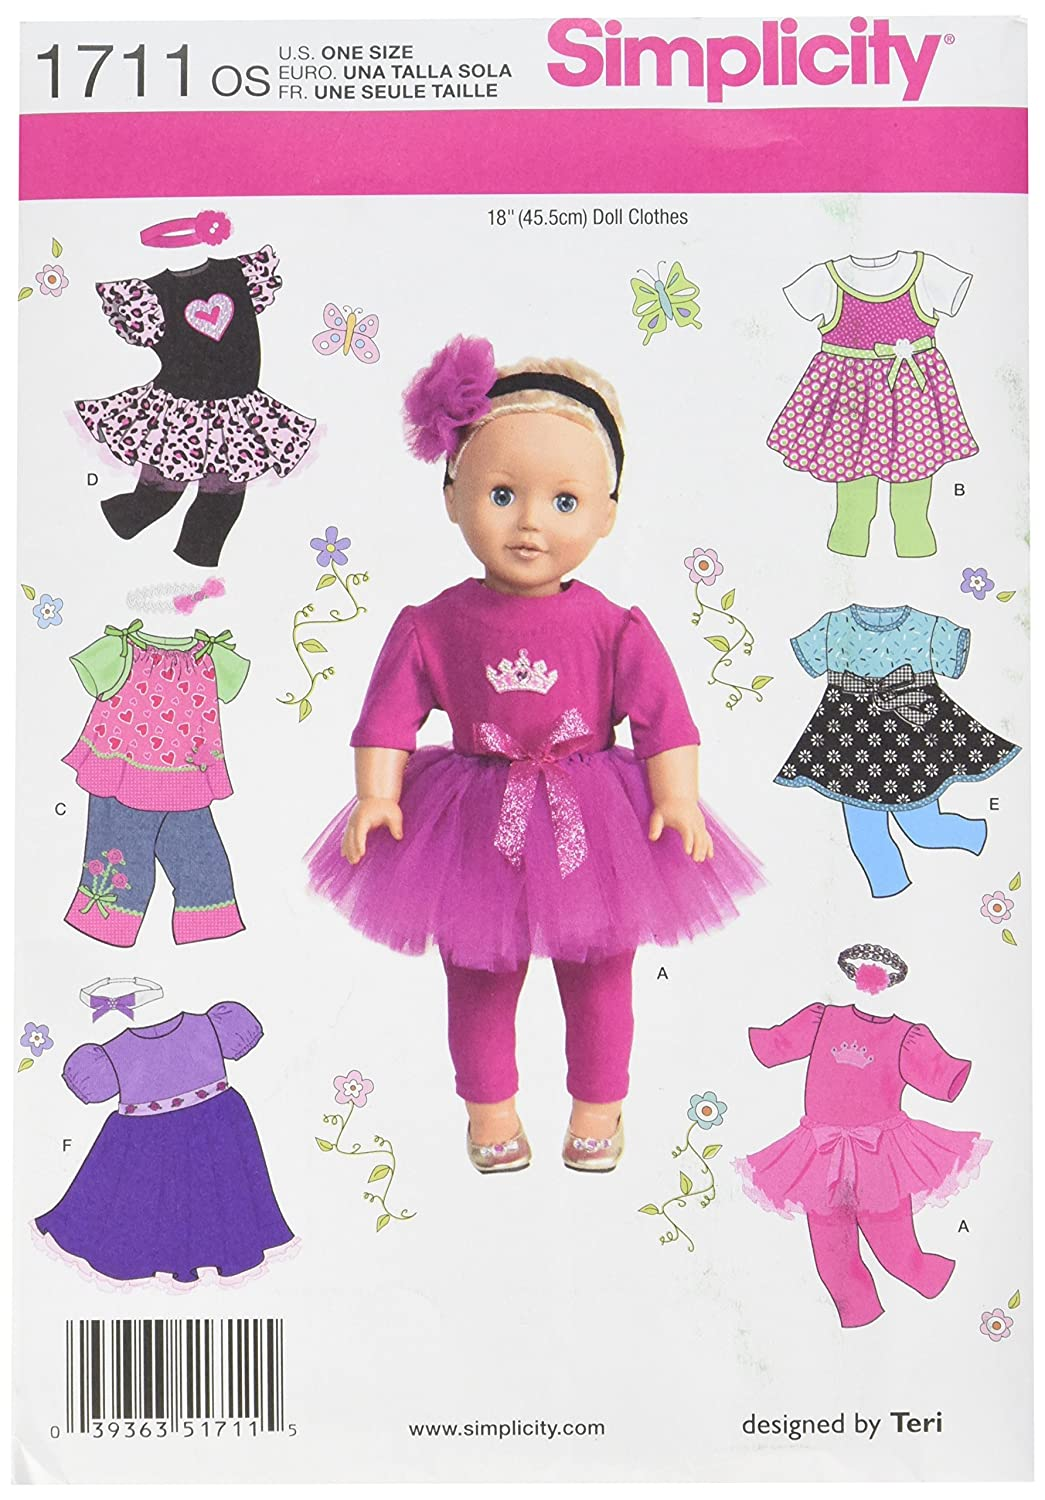 Simplicity button bow boutique sewing pattern 1484 18in dolls simplicity pattern 1711os 18 inch once size doll clothes jeuxipadfo Image collections